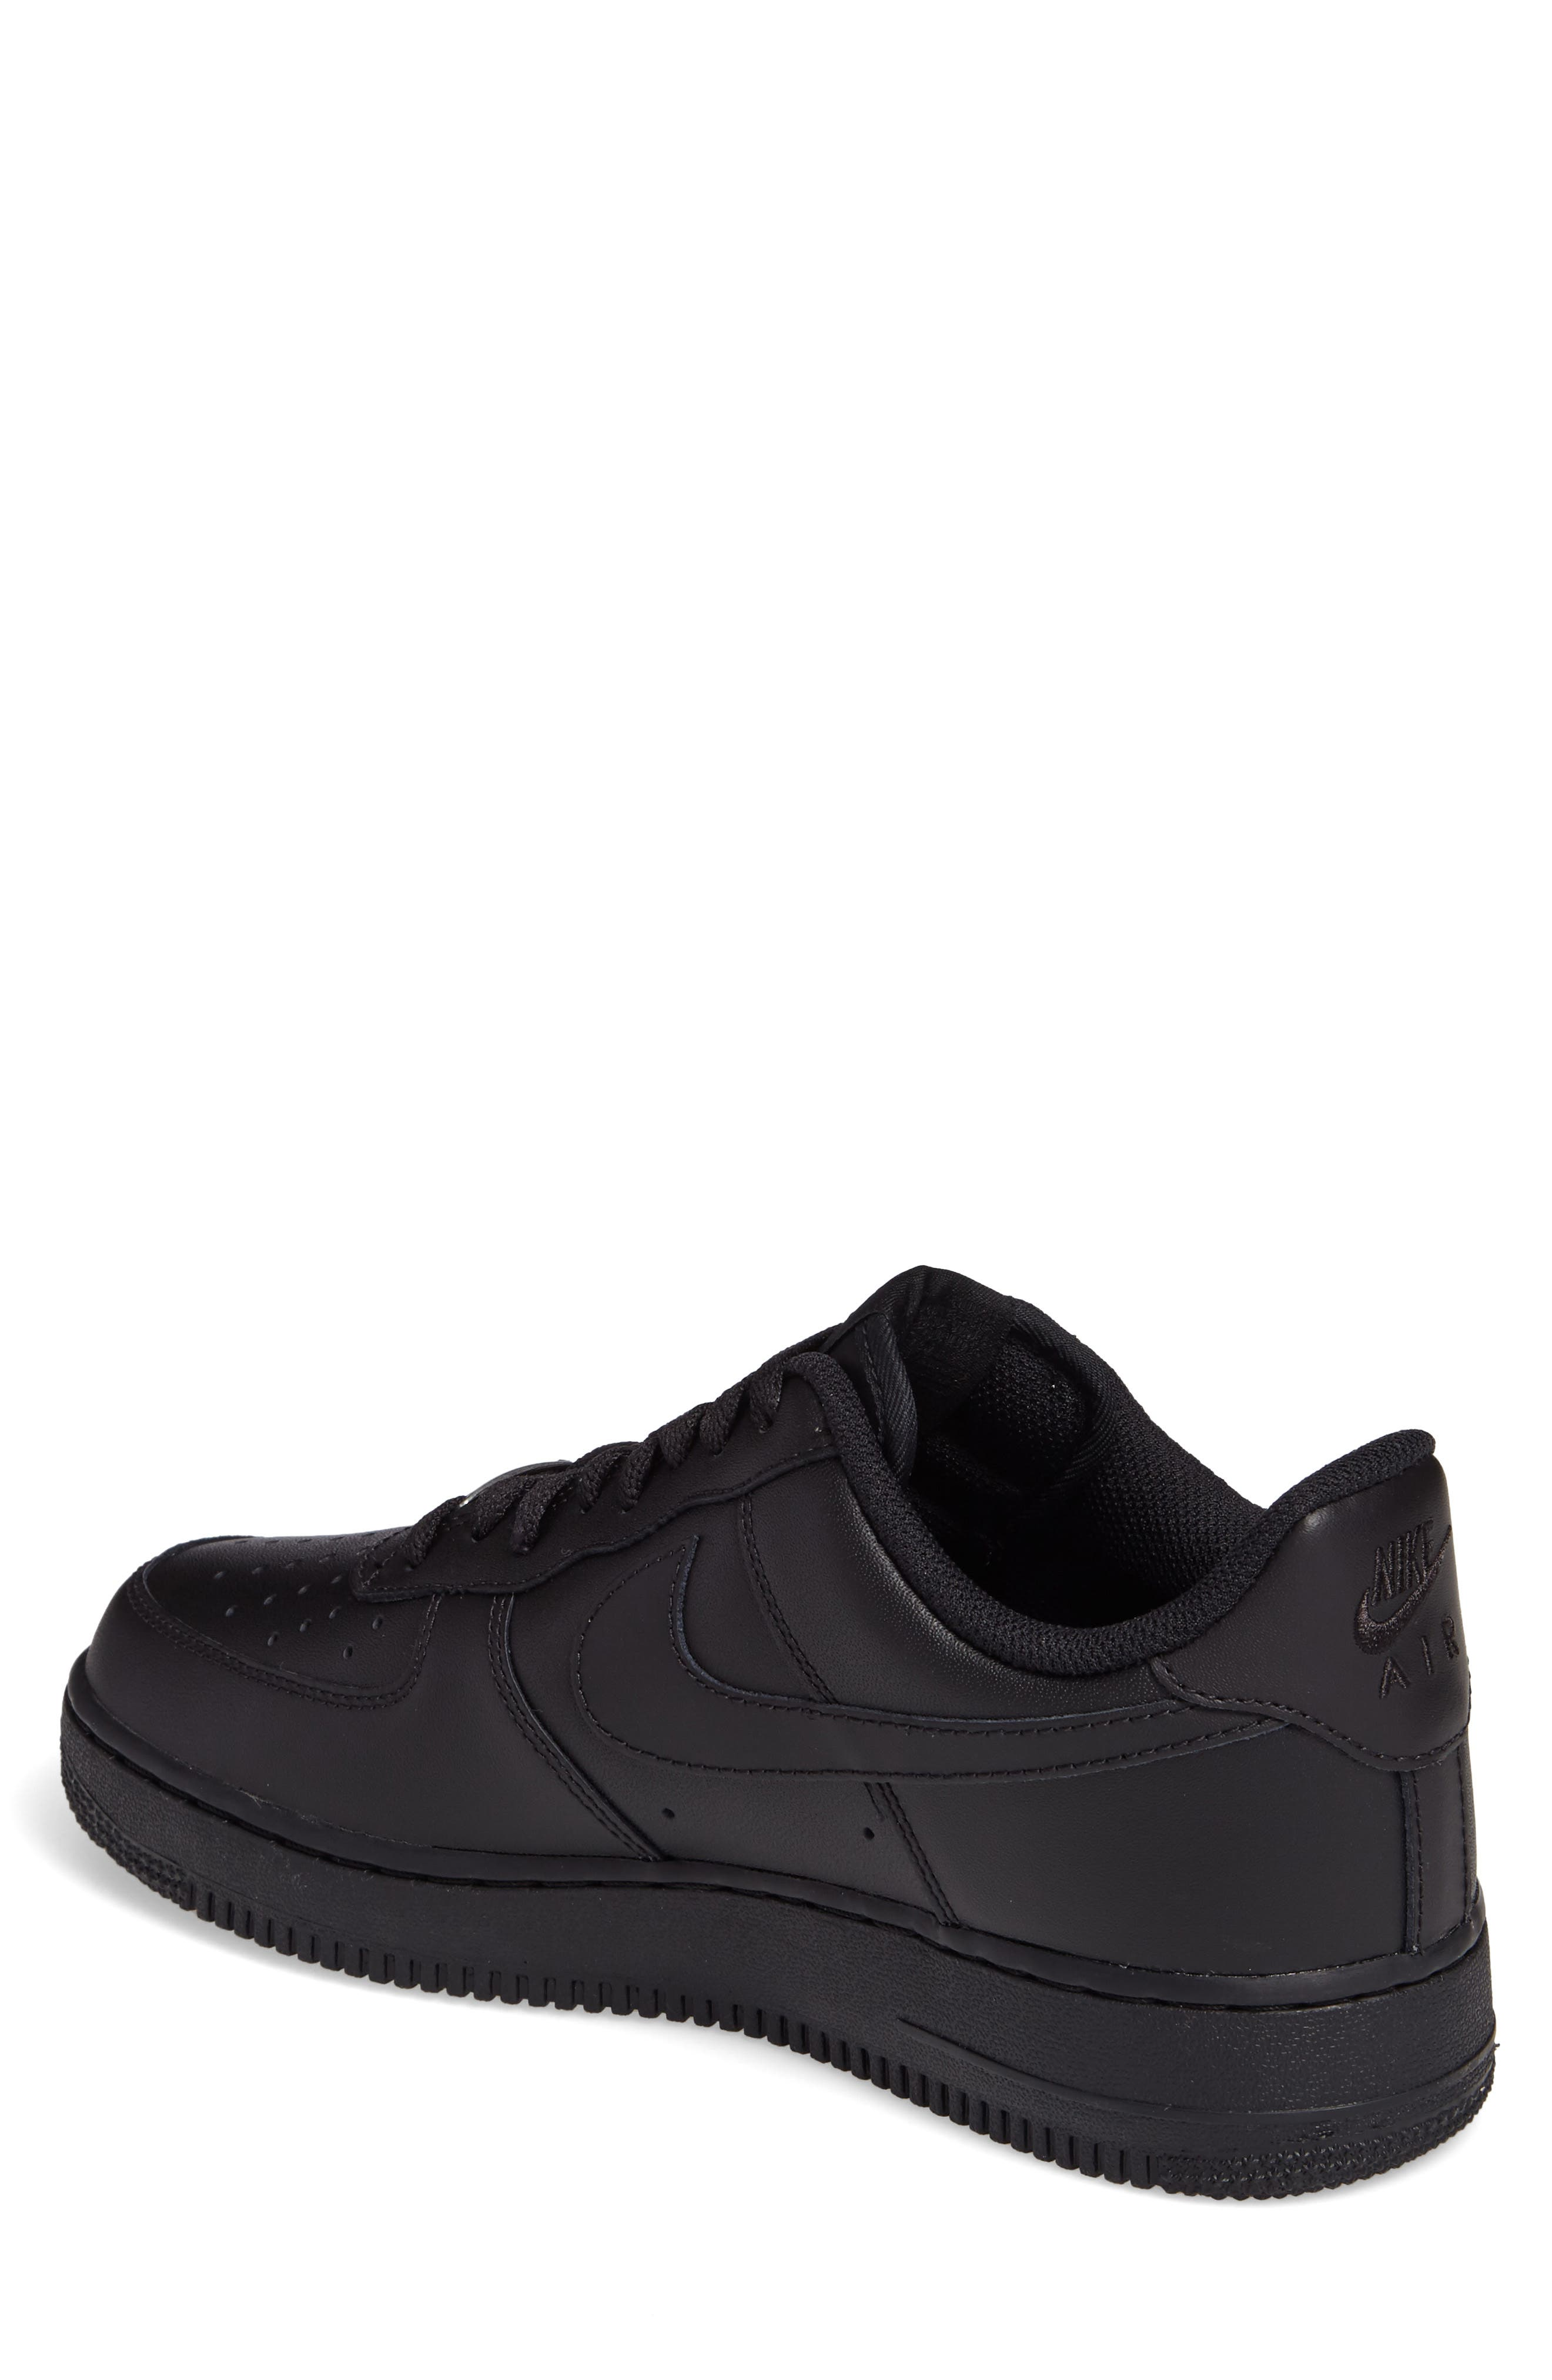 Air Force 1 '07 Sneaker,                             Alternate thumbnail 2, color,                             Black/ Black